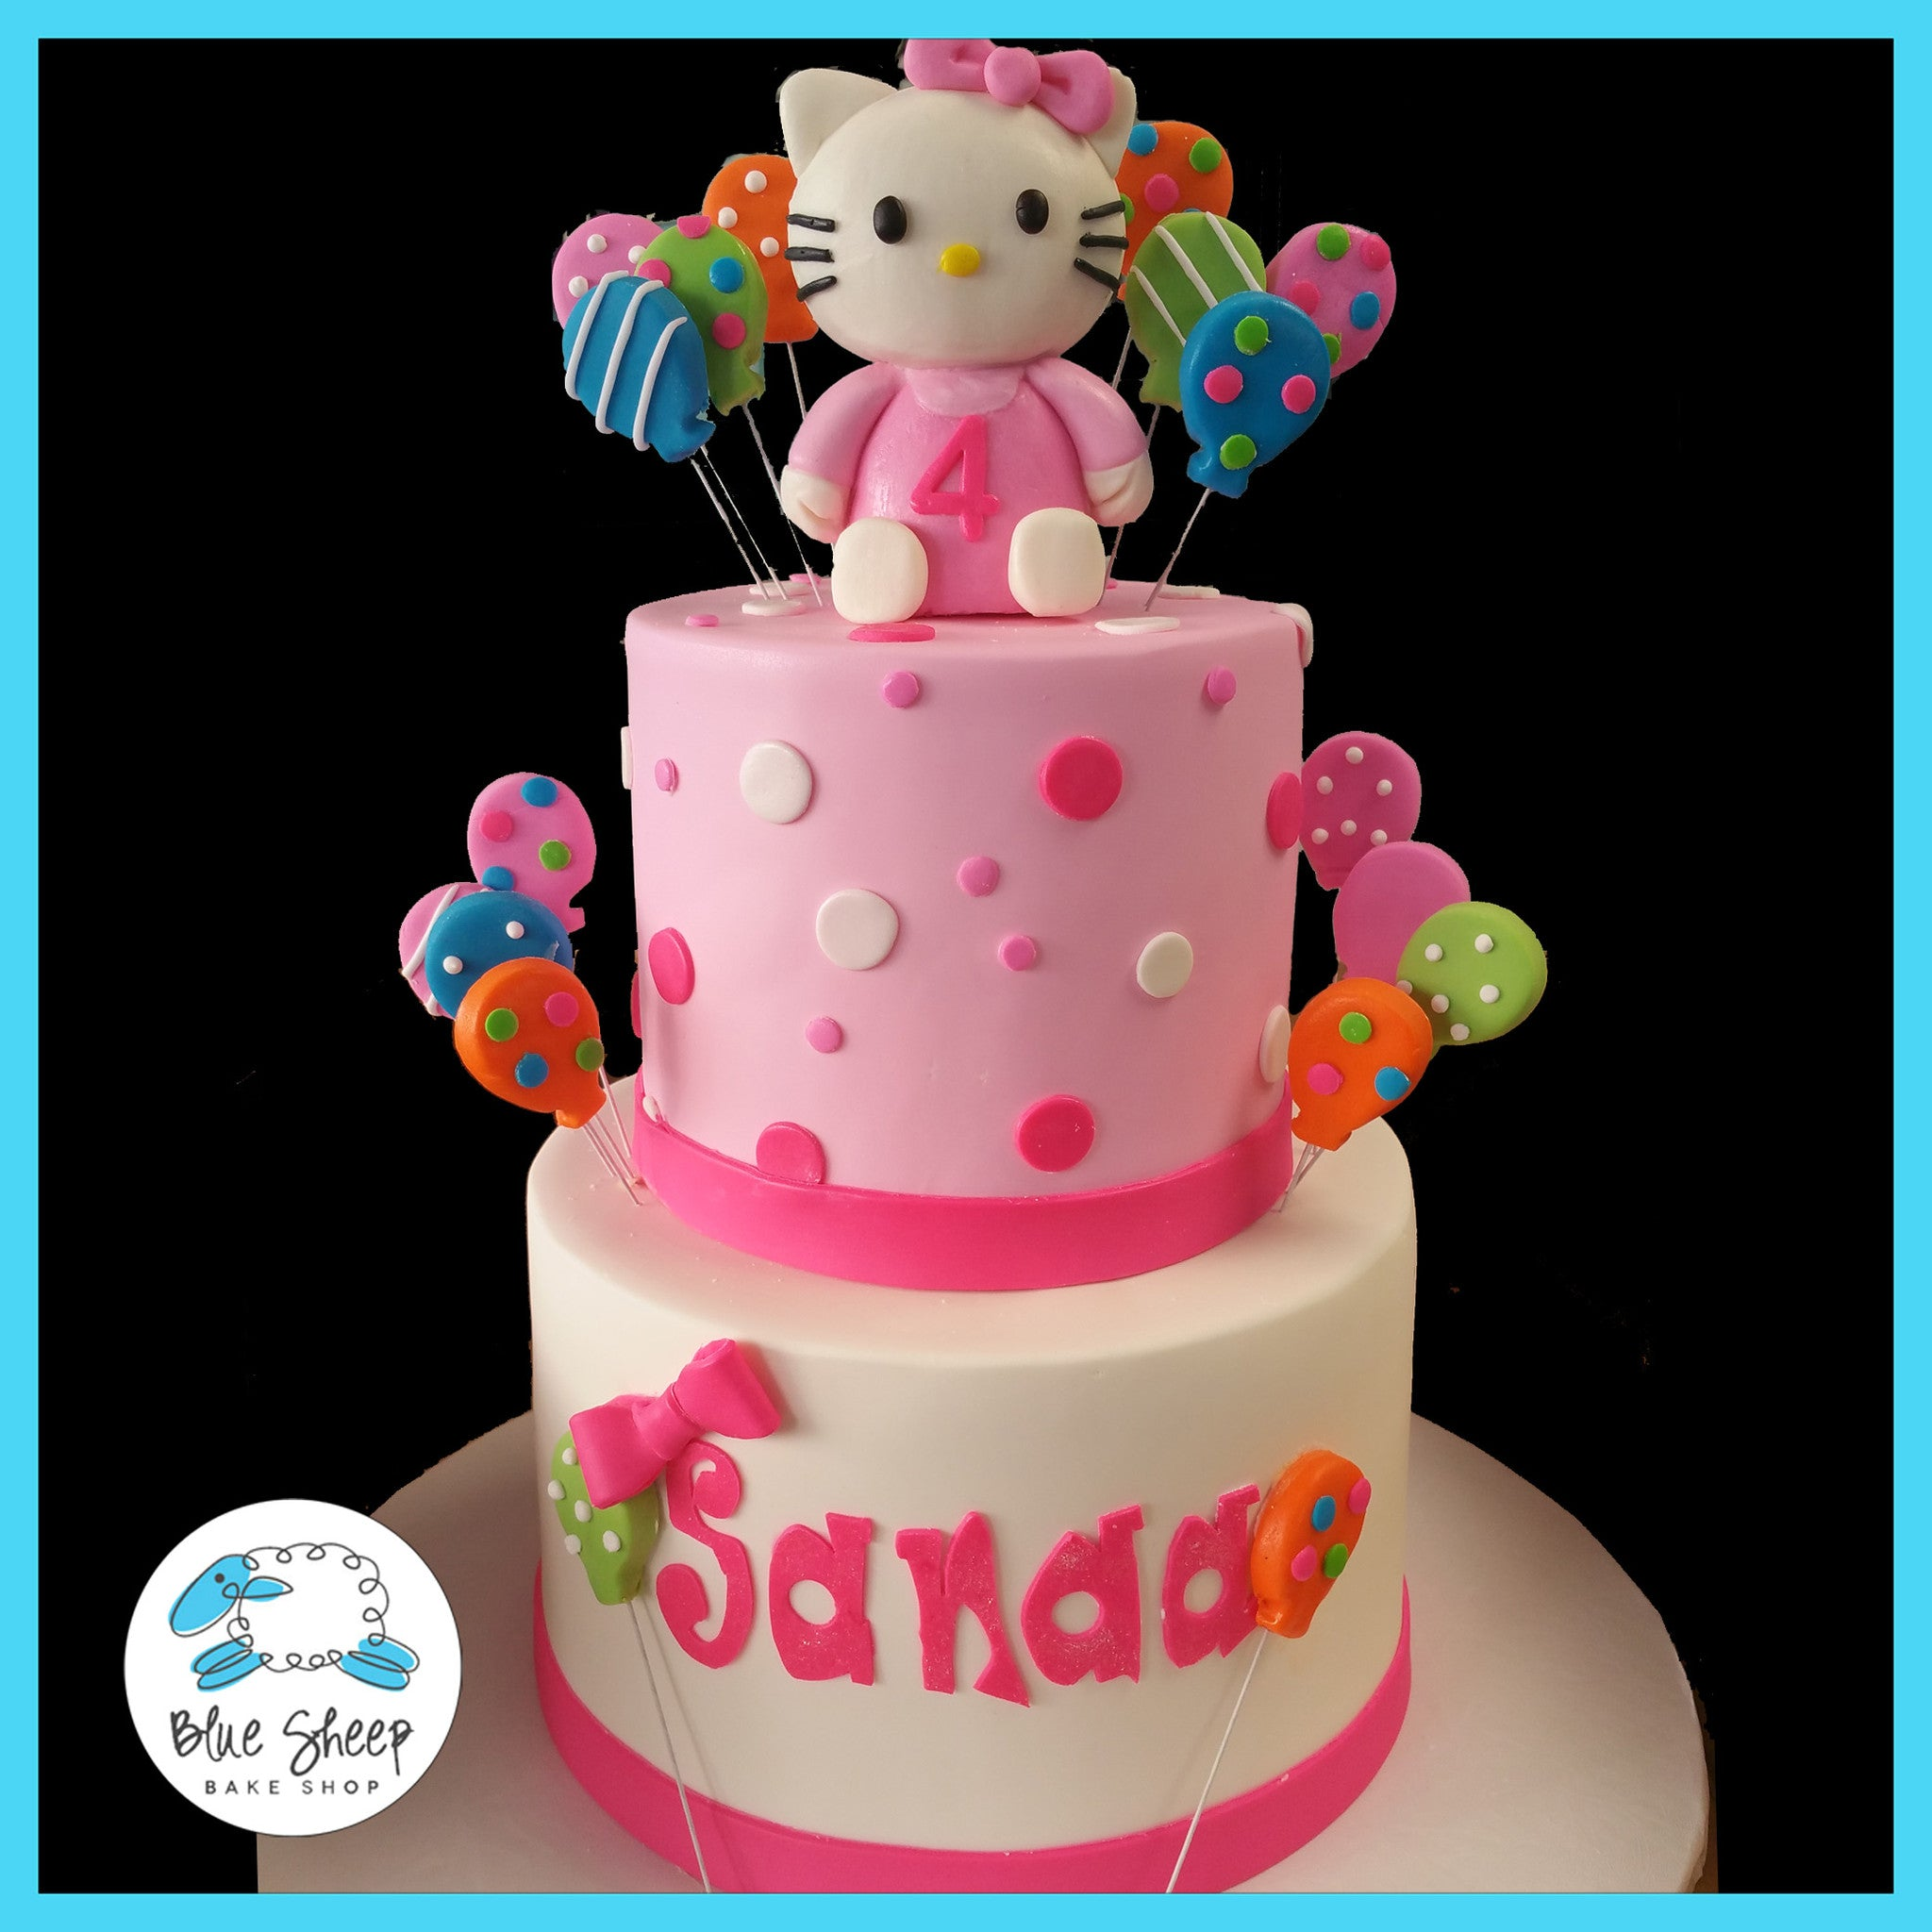 Enjoyable Hello Kitty Birthday Cake Blue Sheep Bake Shop Personalised Birthday Cards Paralily Jamesorg